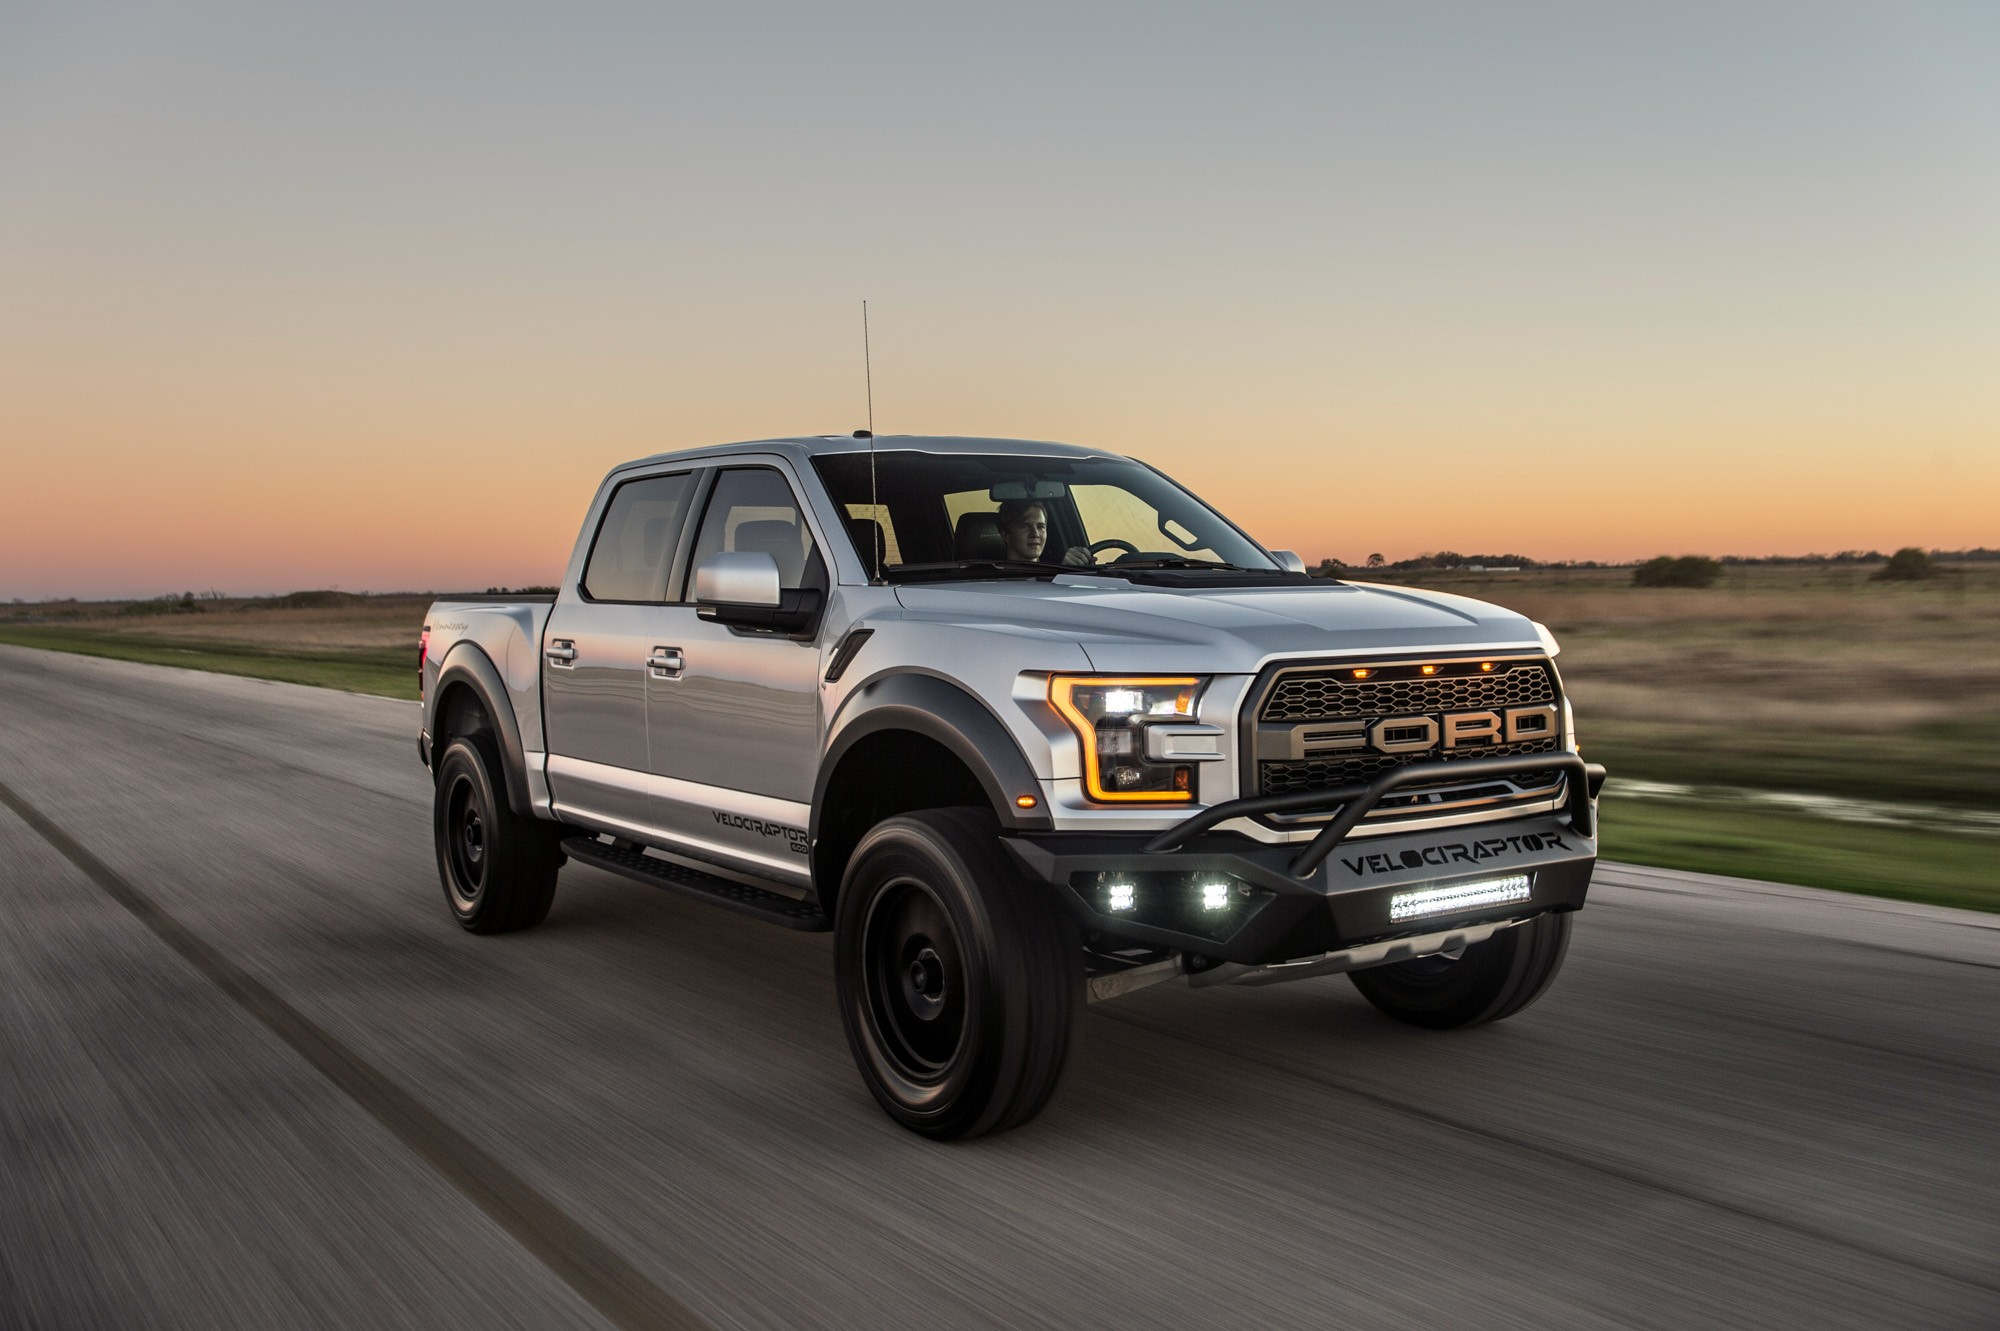 Hennessey Performance Tunes The 2017 Ford F-150 Raptor To 605 HP - autoevolution